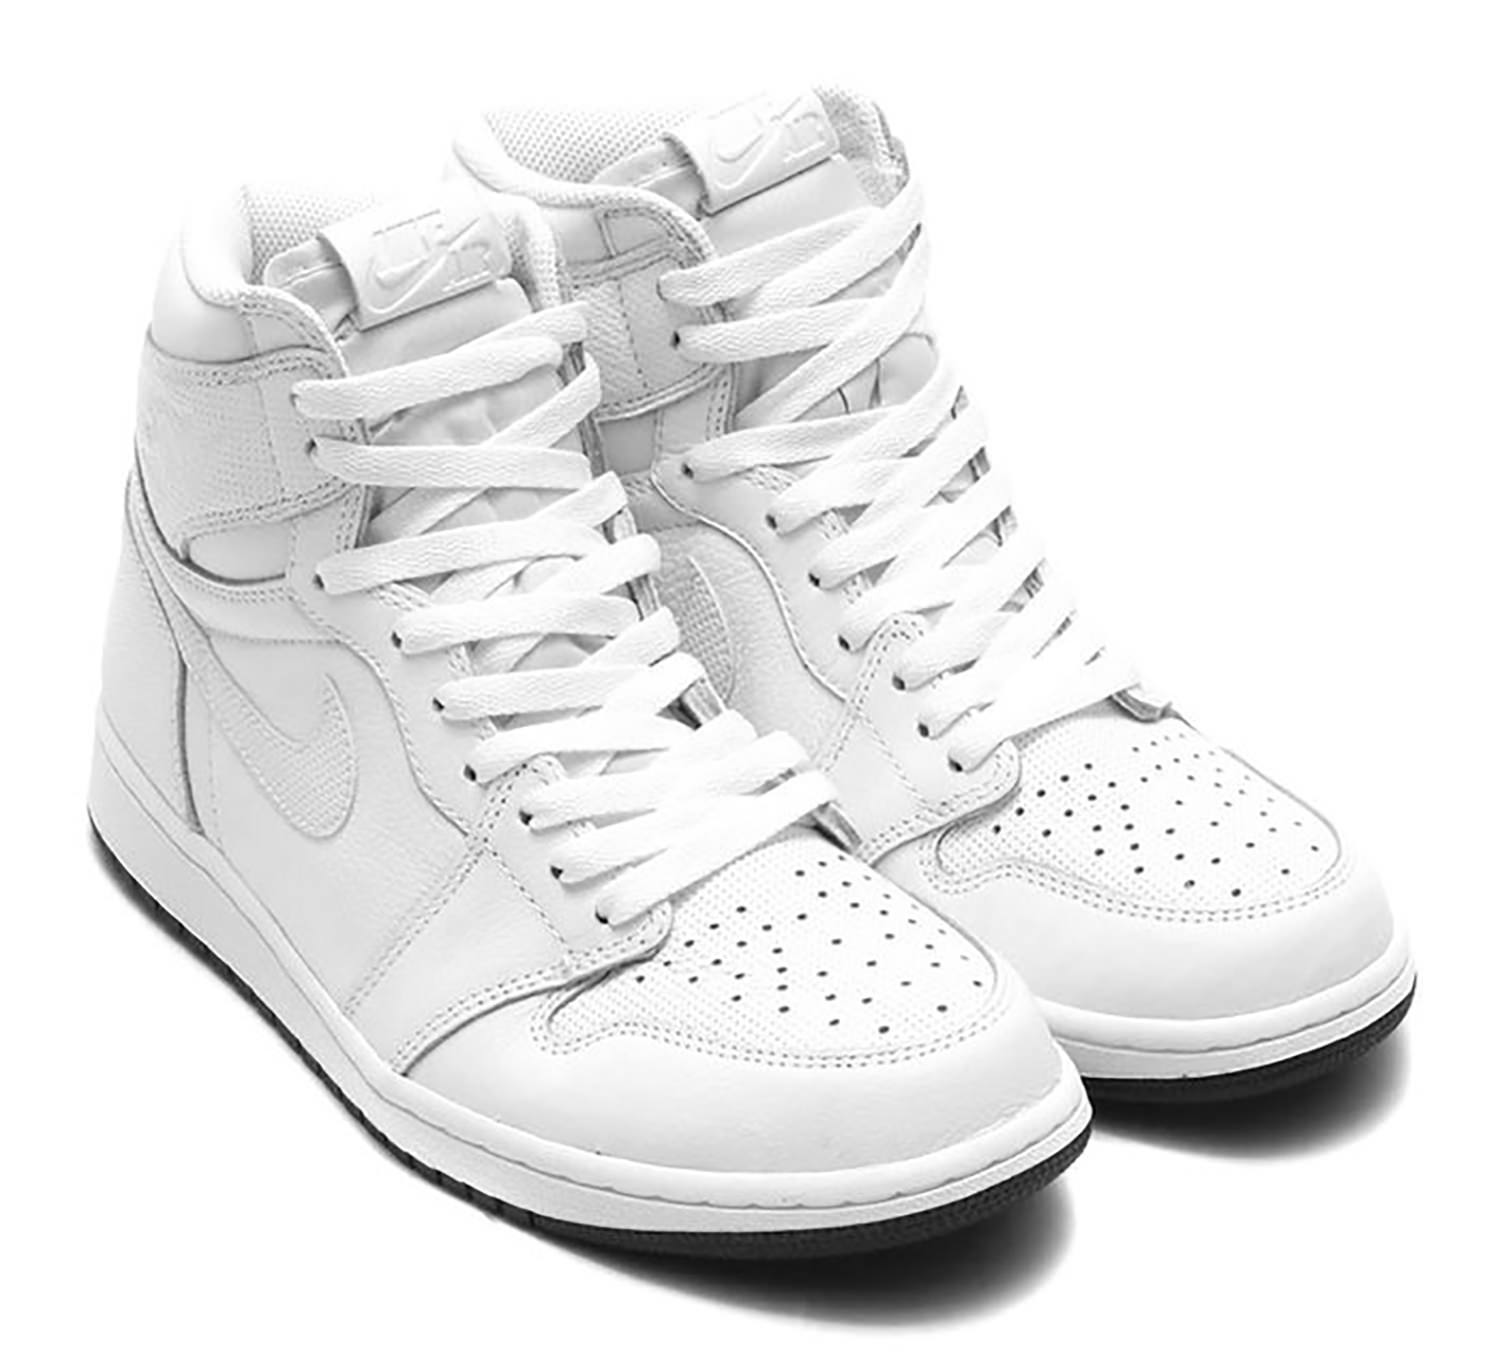 air-jordan-1-high-perforated-pack-1